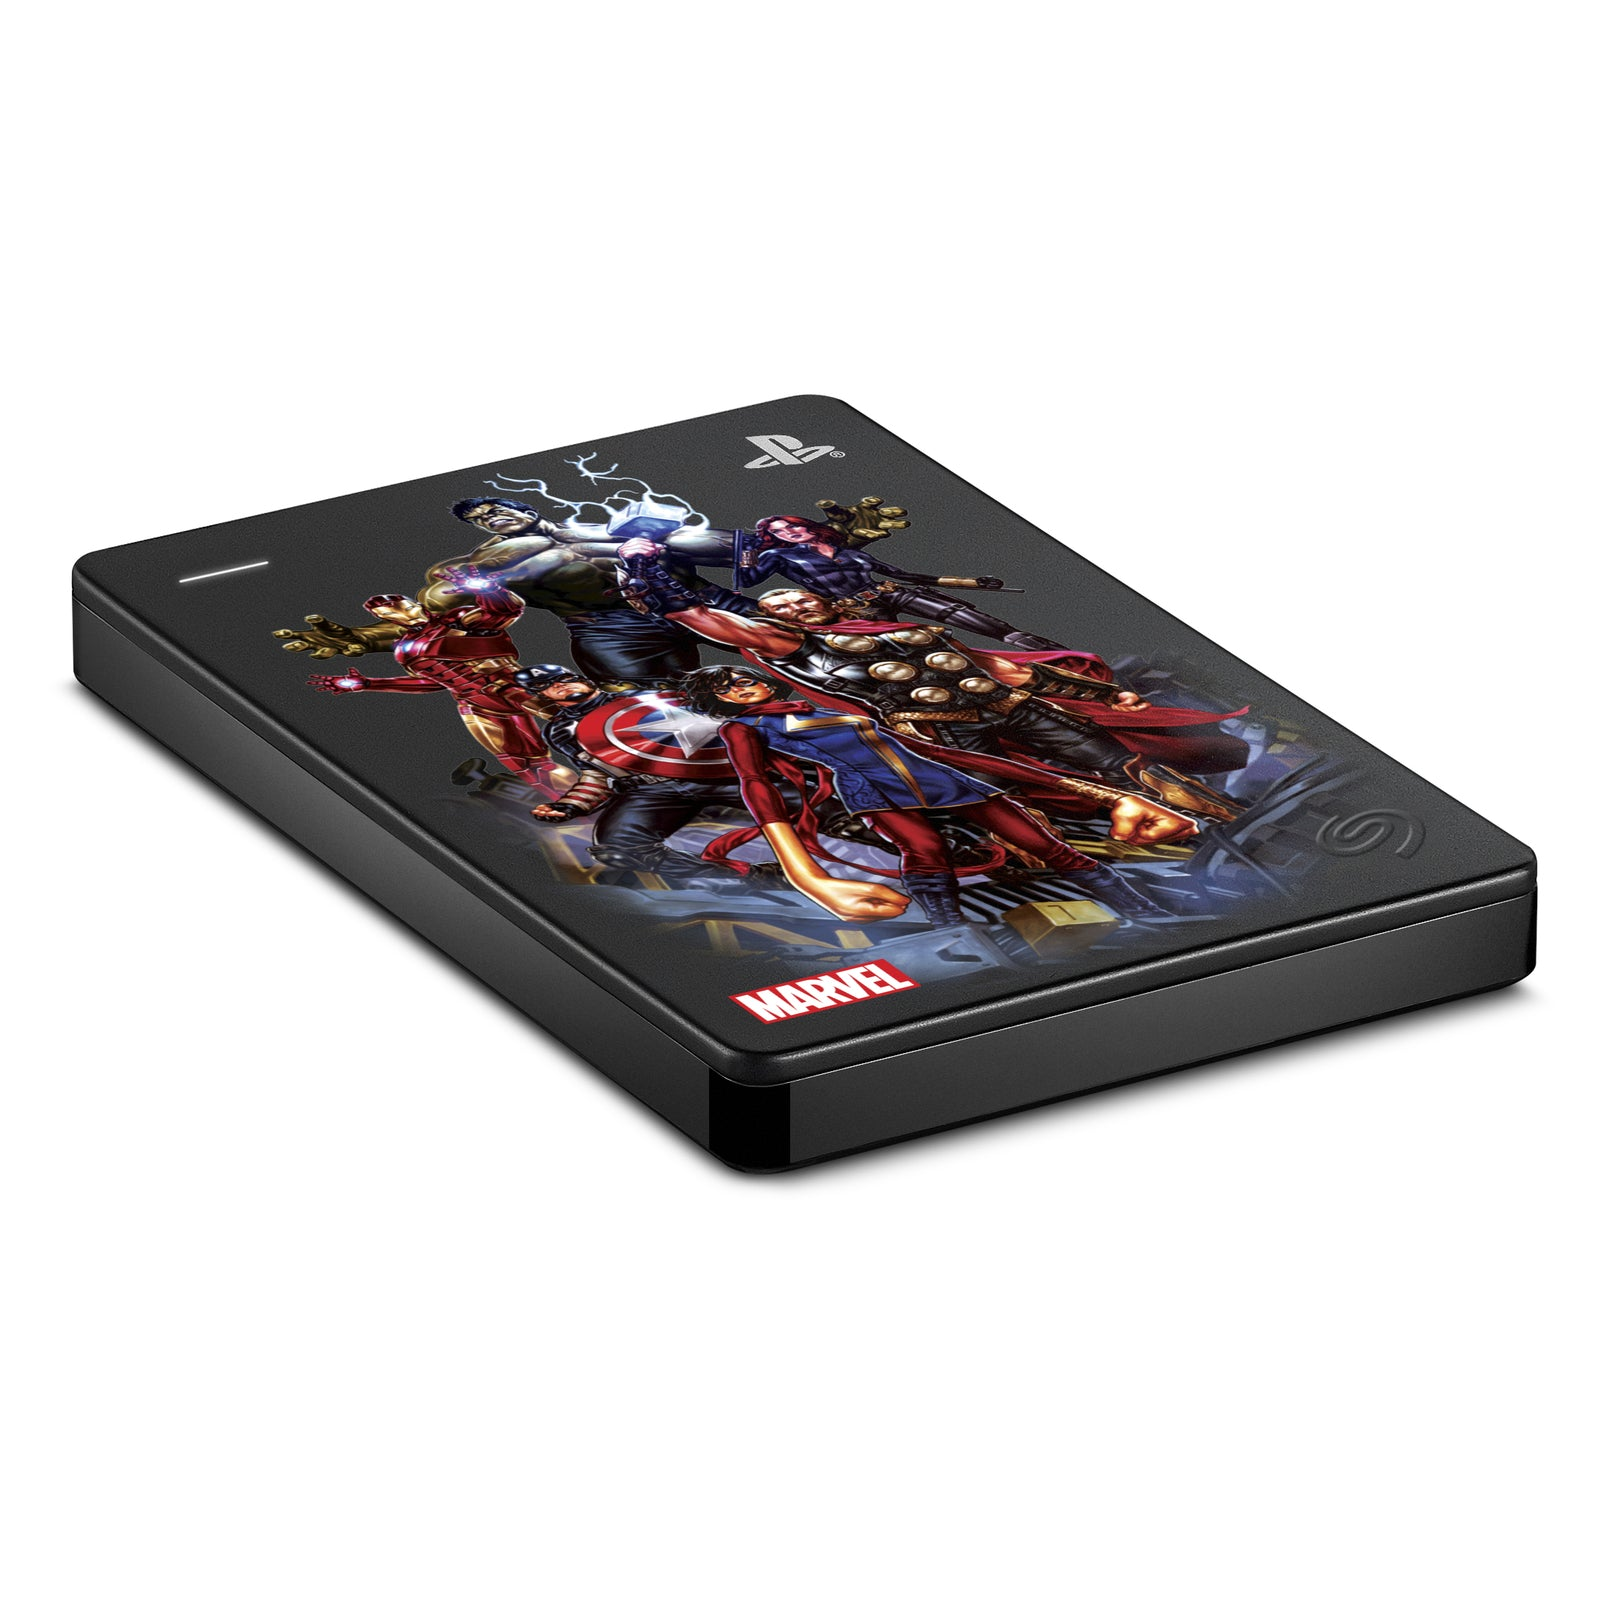 2TB Seagate Marvel's Avengers Game Drive for PlayStation 4 (Avengers Assembled)